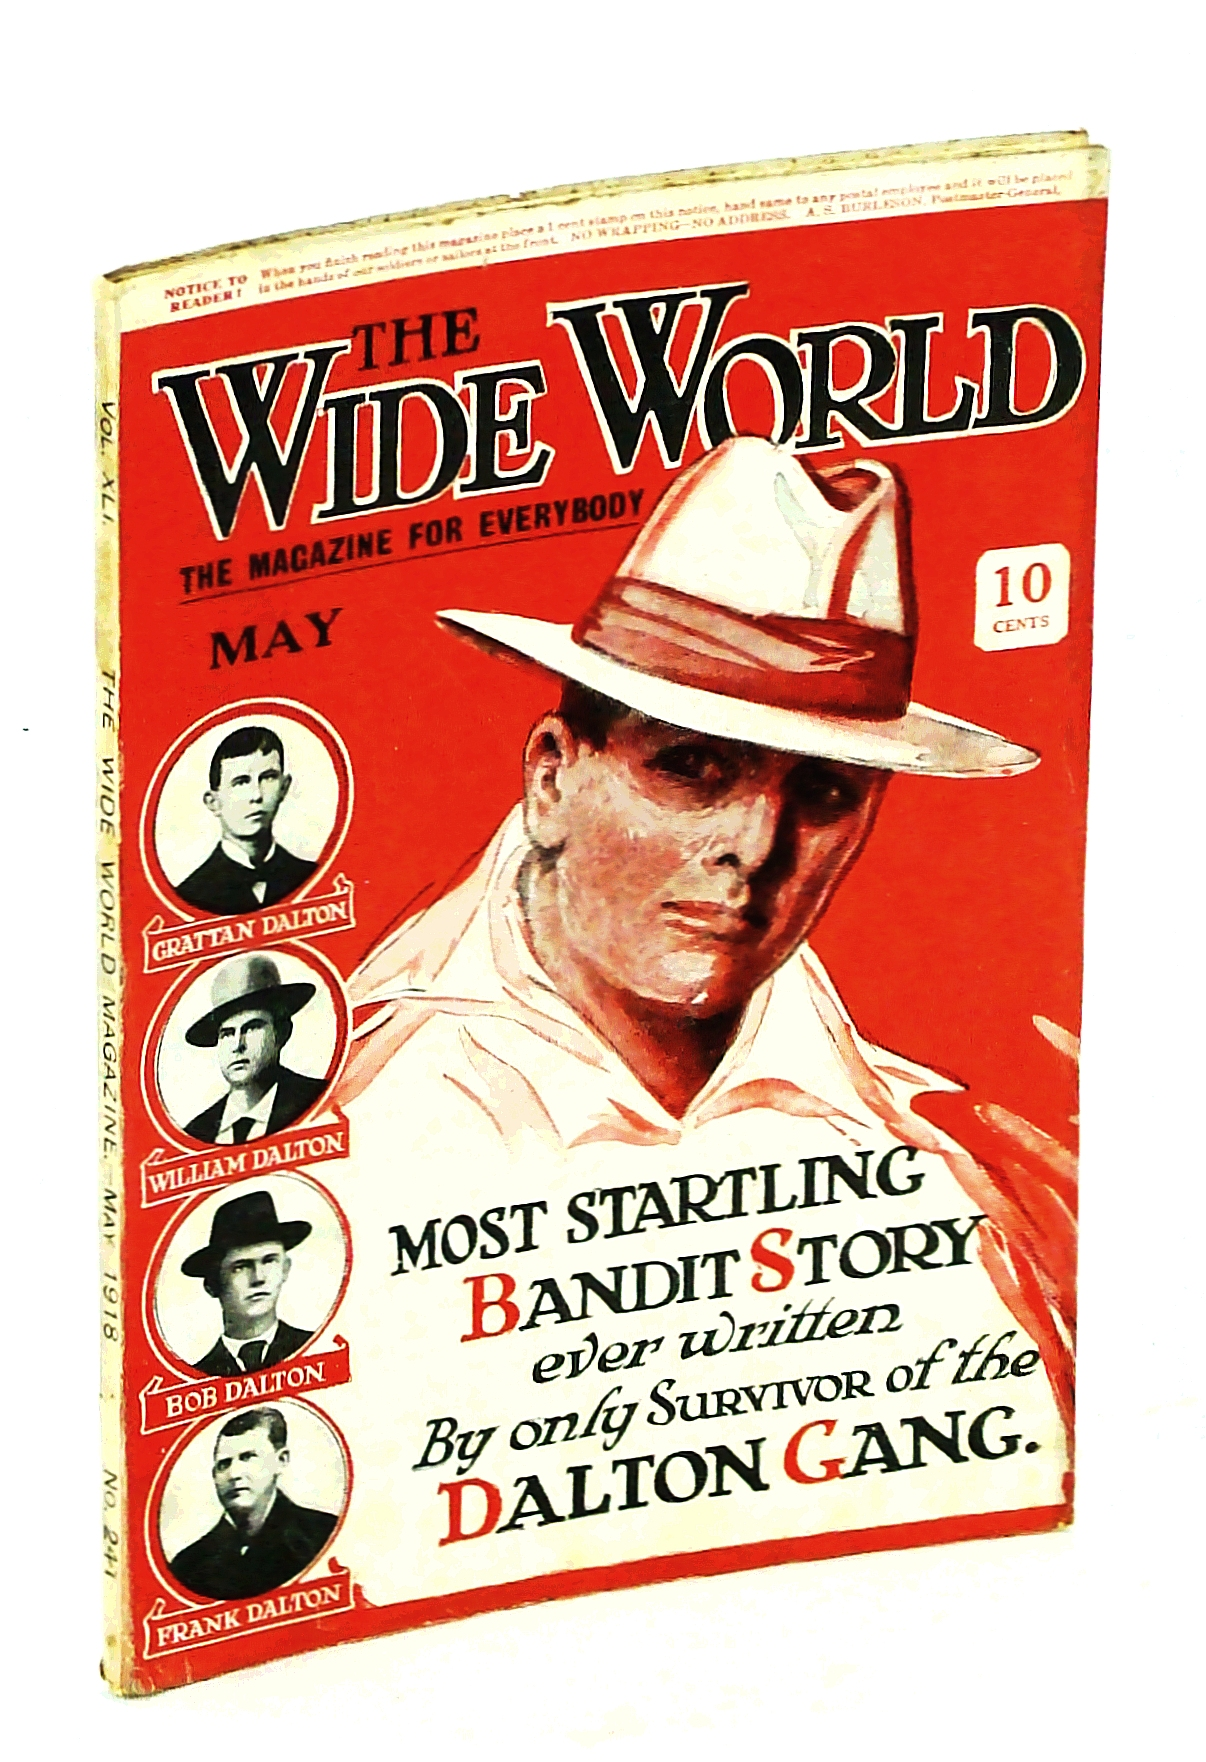 Image for The Wide World, The Magazine for Men, May 1918, Vol. 41, No. 241: The Dalton Gang